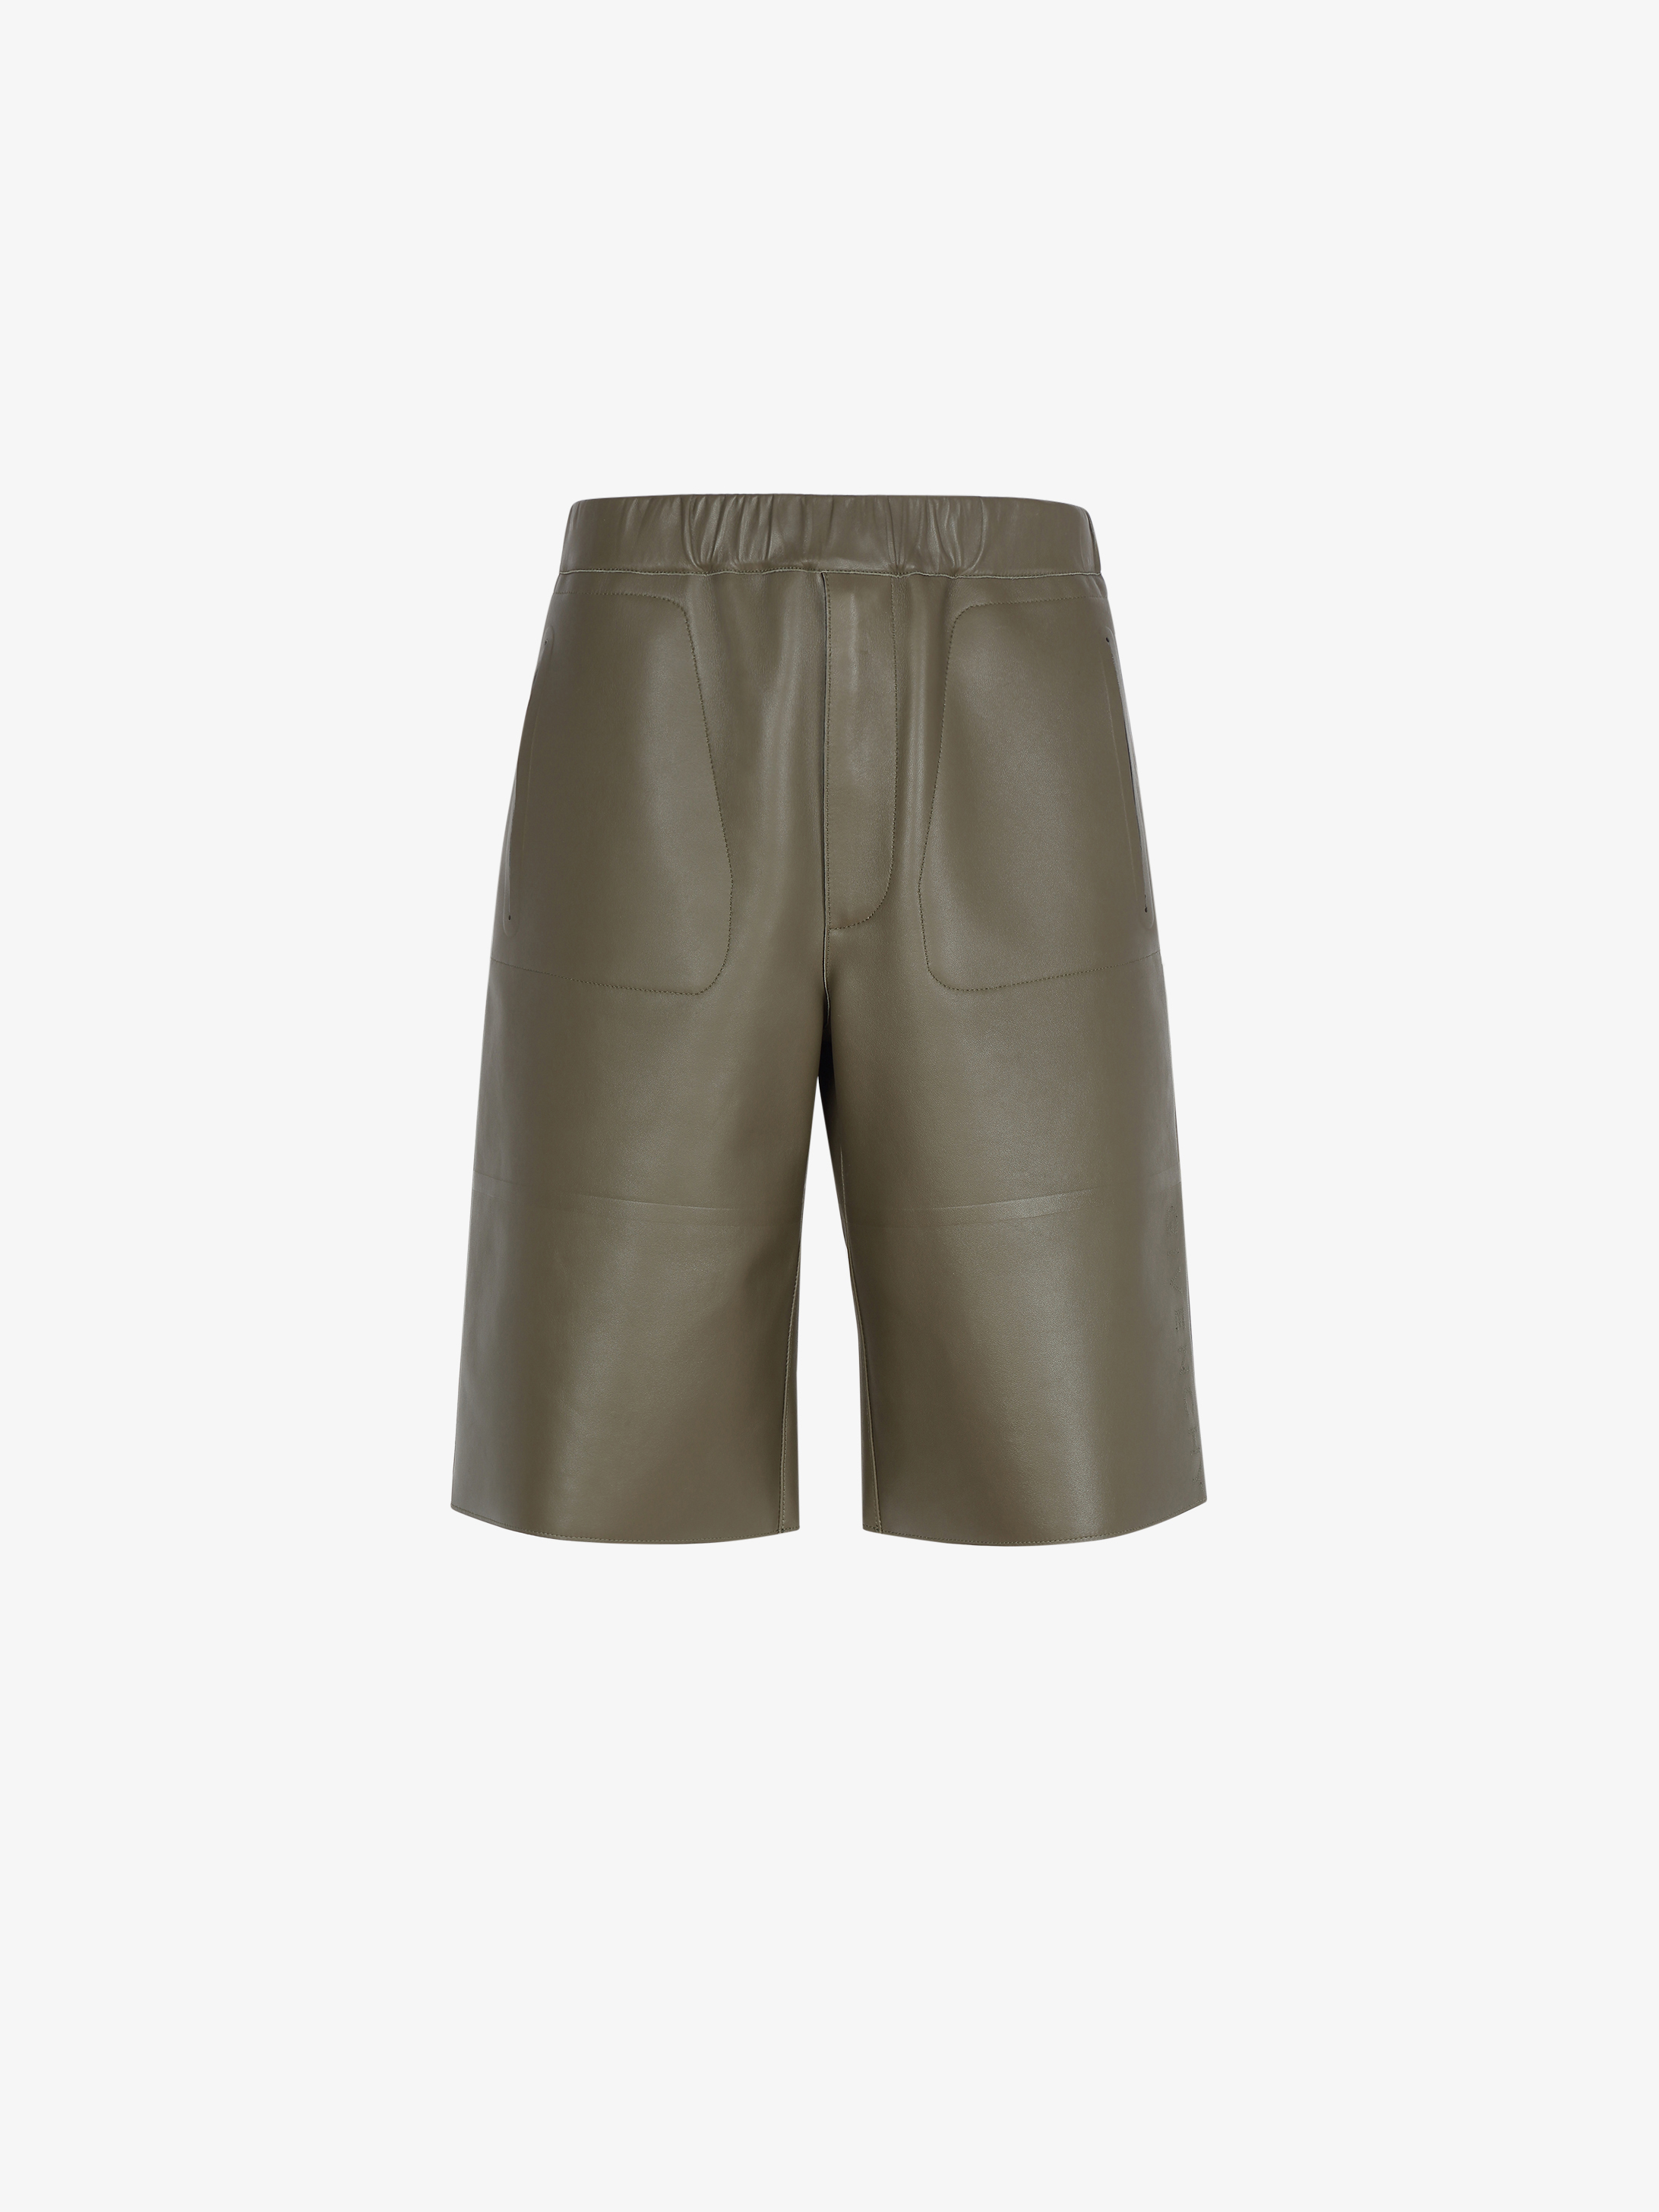 GIVENCHY short pants in leather